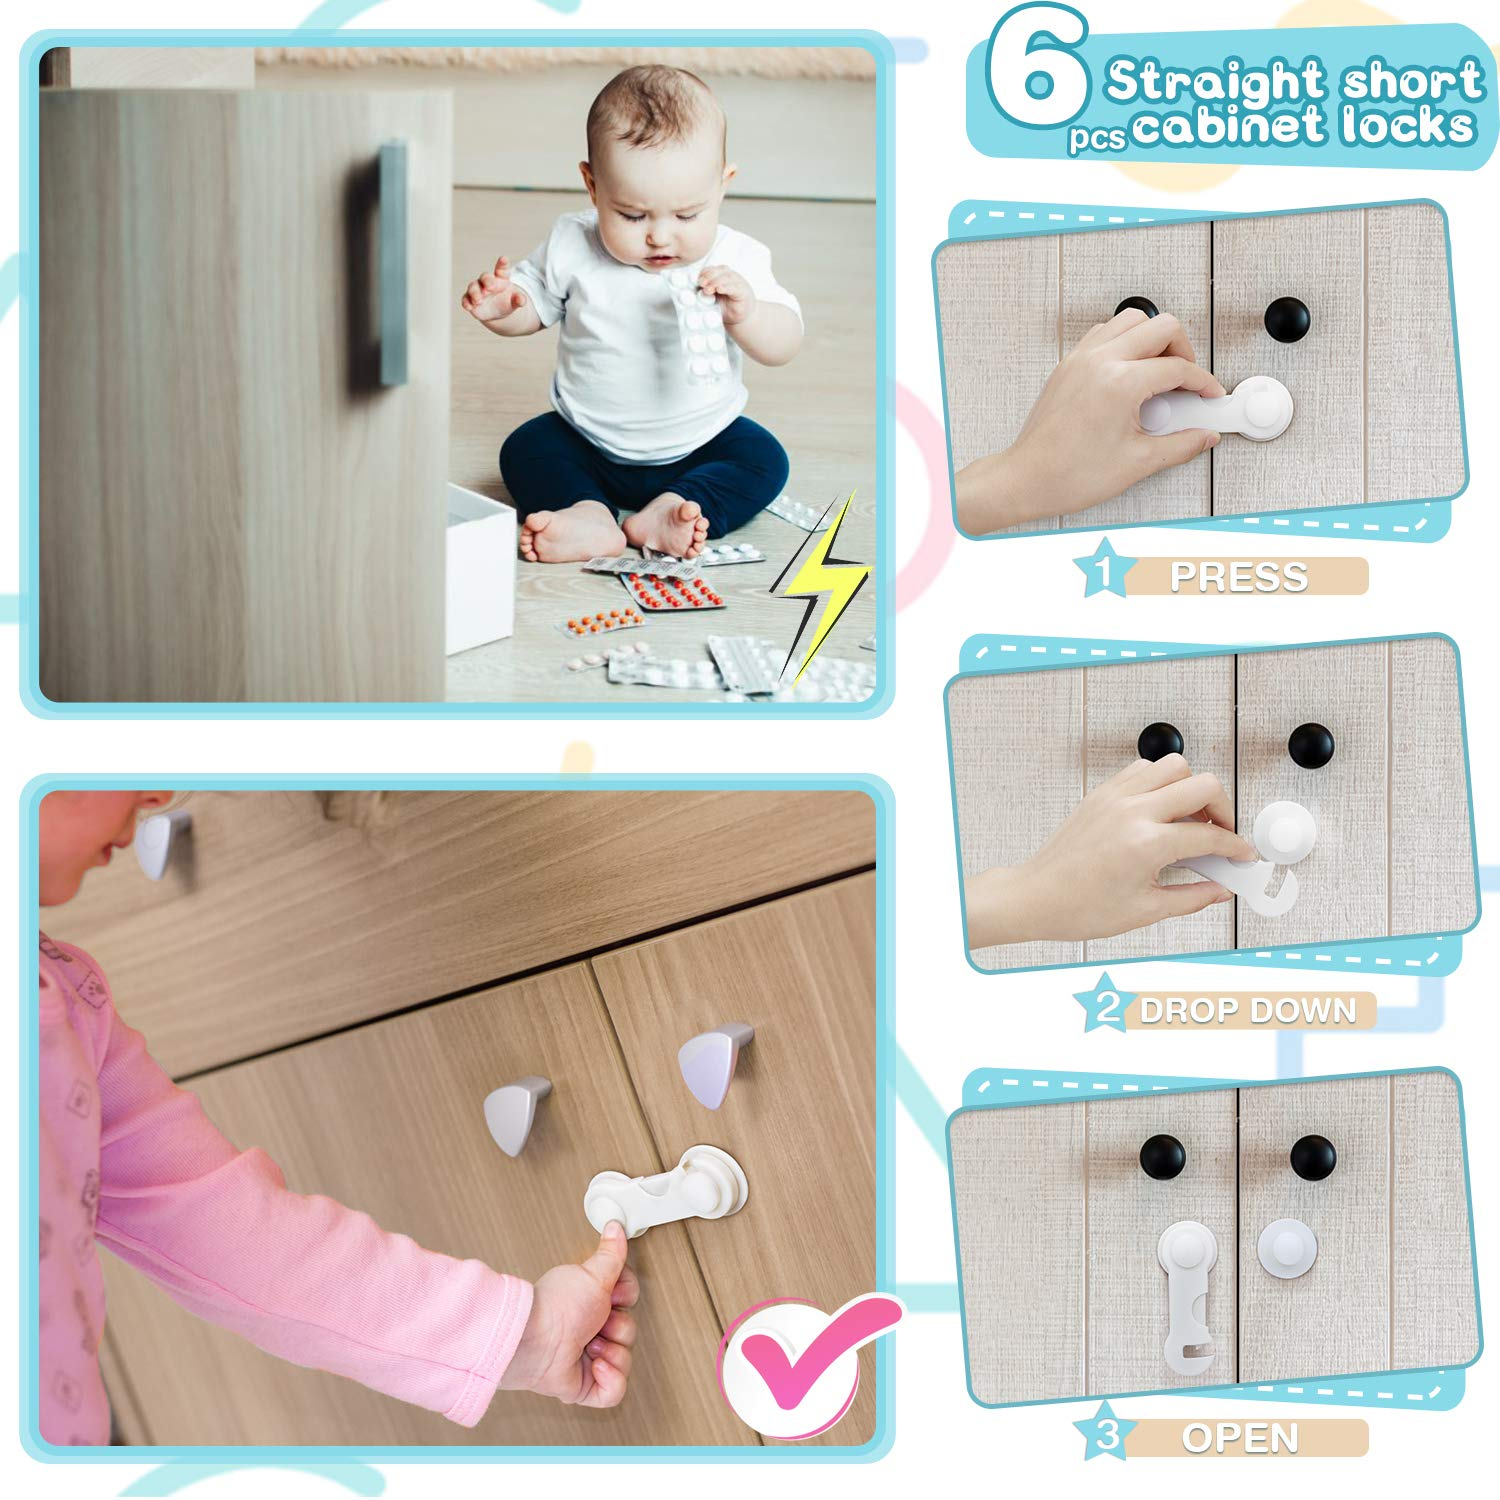 4 Locks + 5 Auxiliary + 1 Key 4 Door Stopper Guards 36 Pieces Baby Safety Protection Set 12 Clear Corner Protectors Jojoin Child Proofing Kit 10 Safety Cabinet Locks Magnetic Cupboard Locks Set